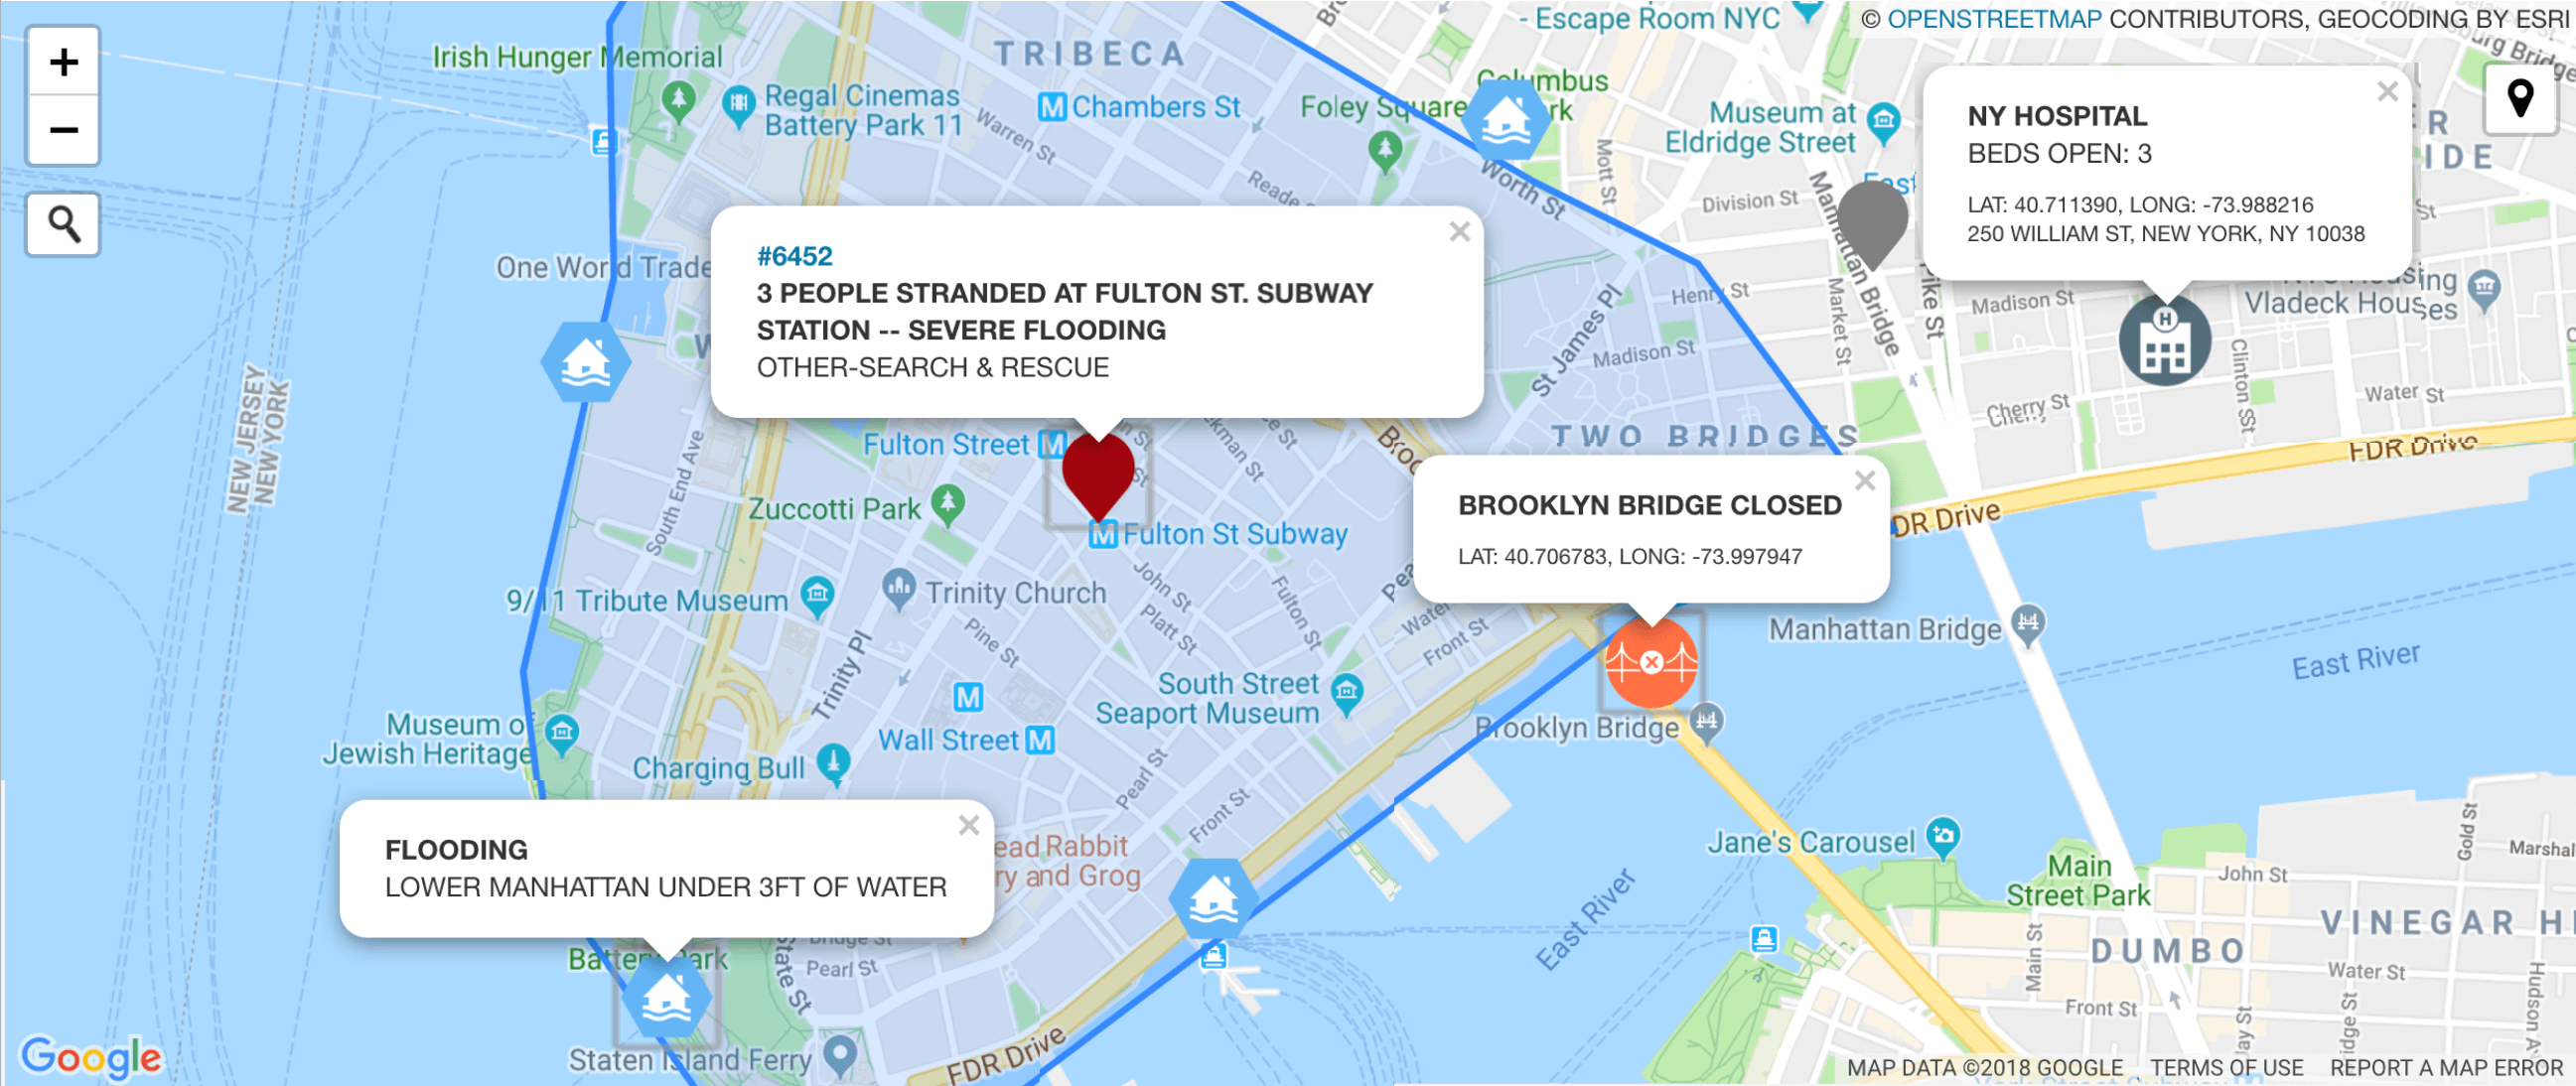 Beacon Emergency Dispatch Map NYC Flooding